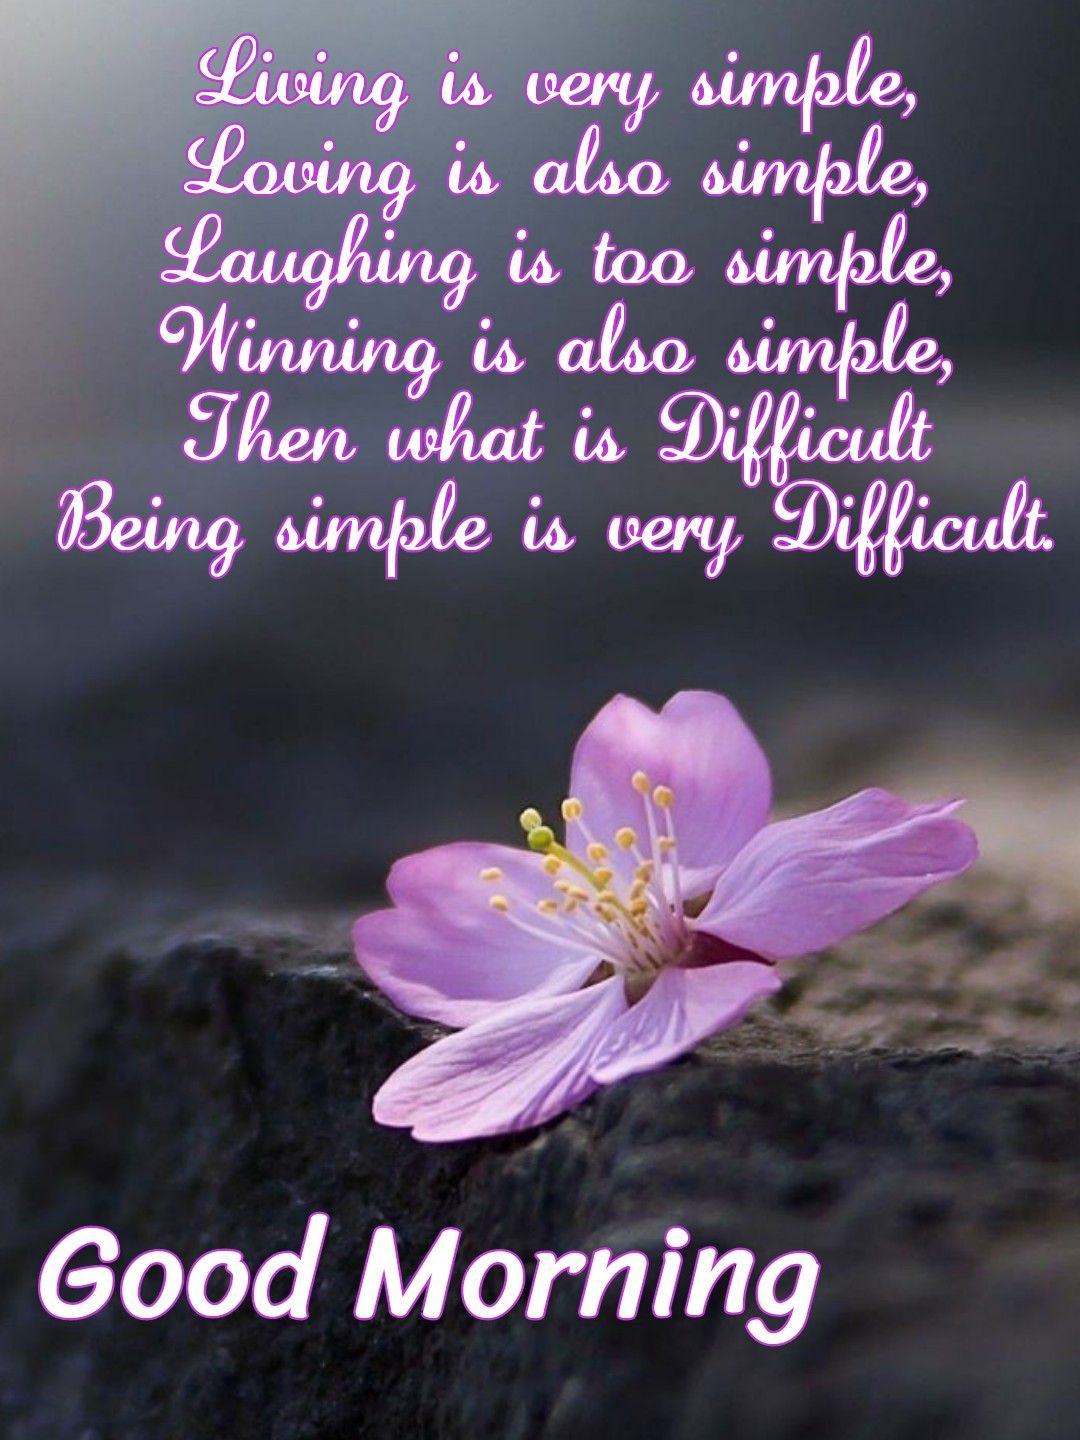 Good Morning Living Is Very Simple Morning Inspirational Quotes Good Morning Quotes Good Morning Inspirational Quotes